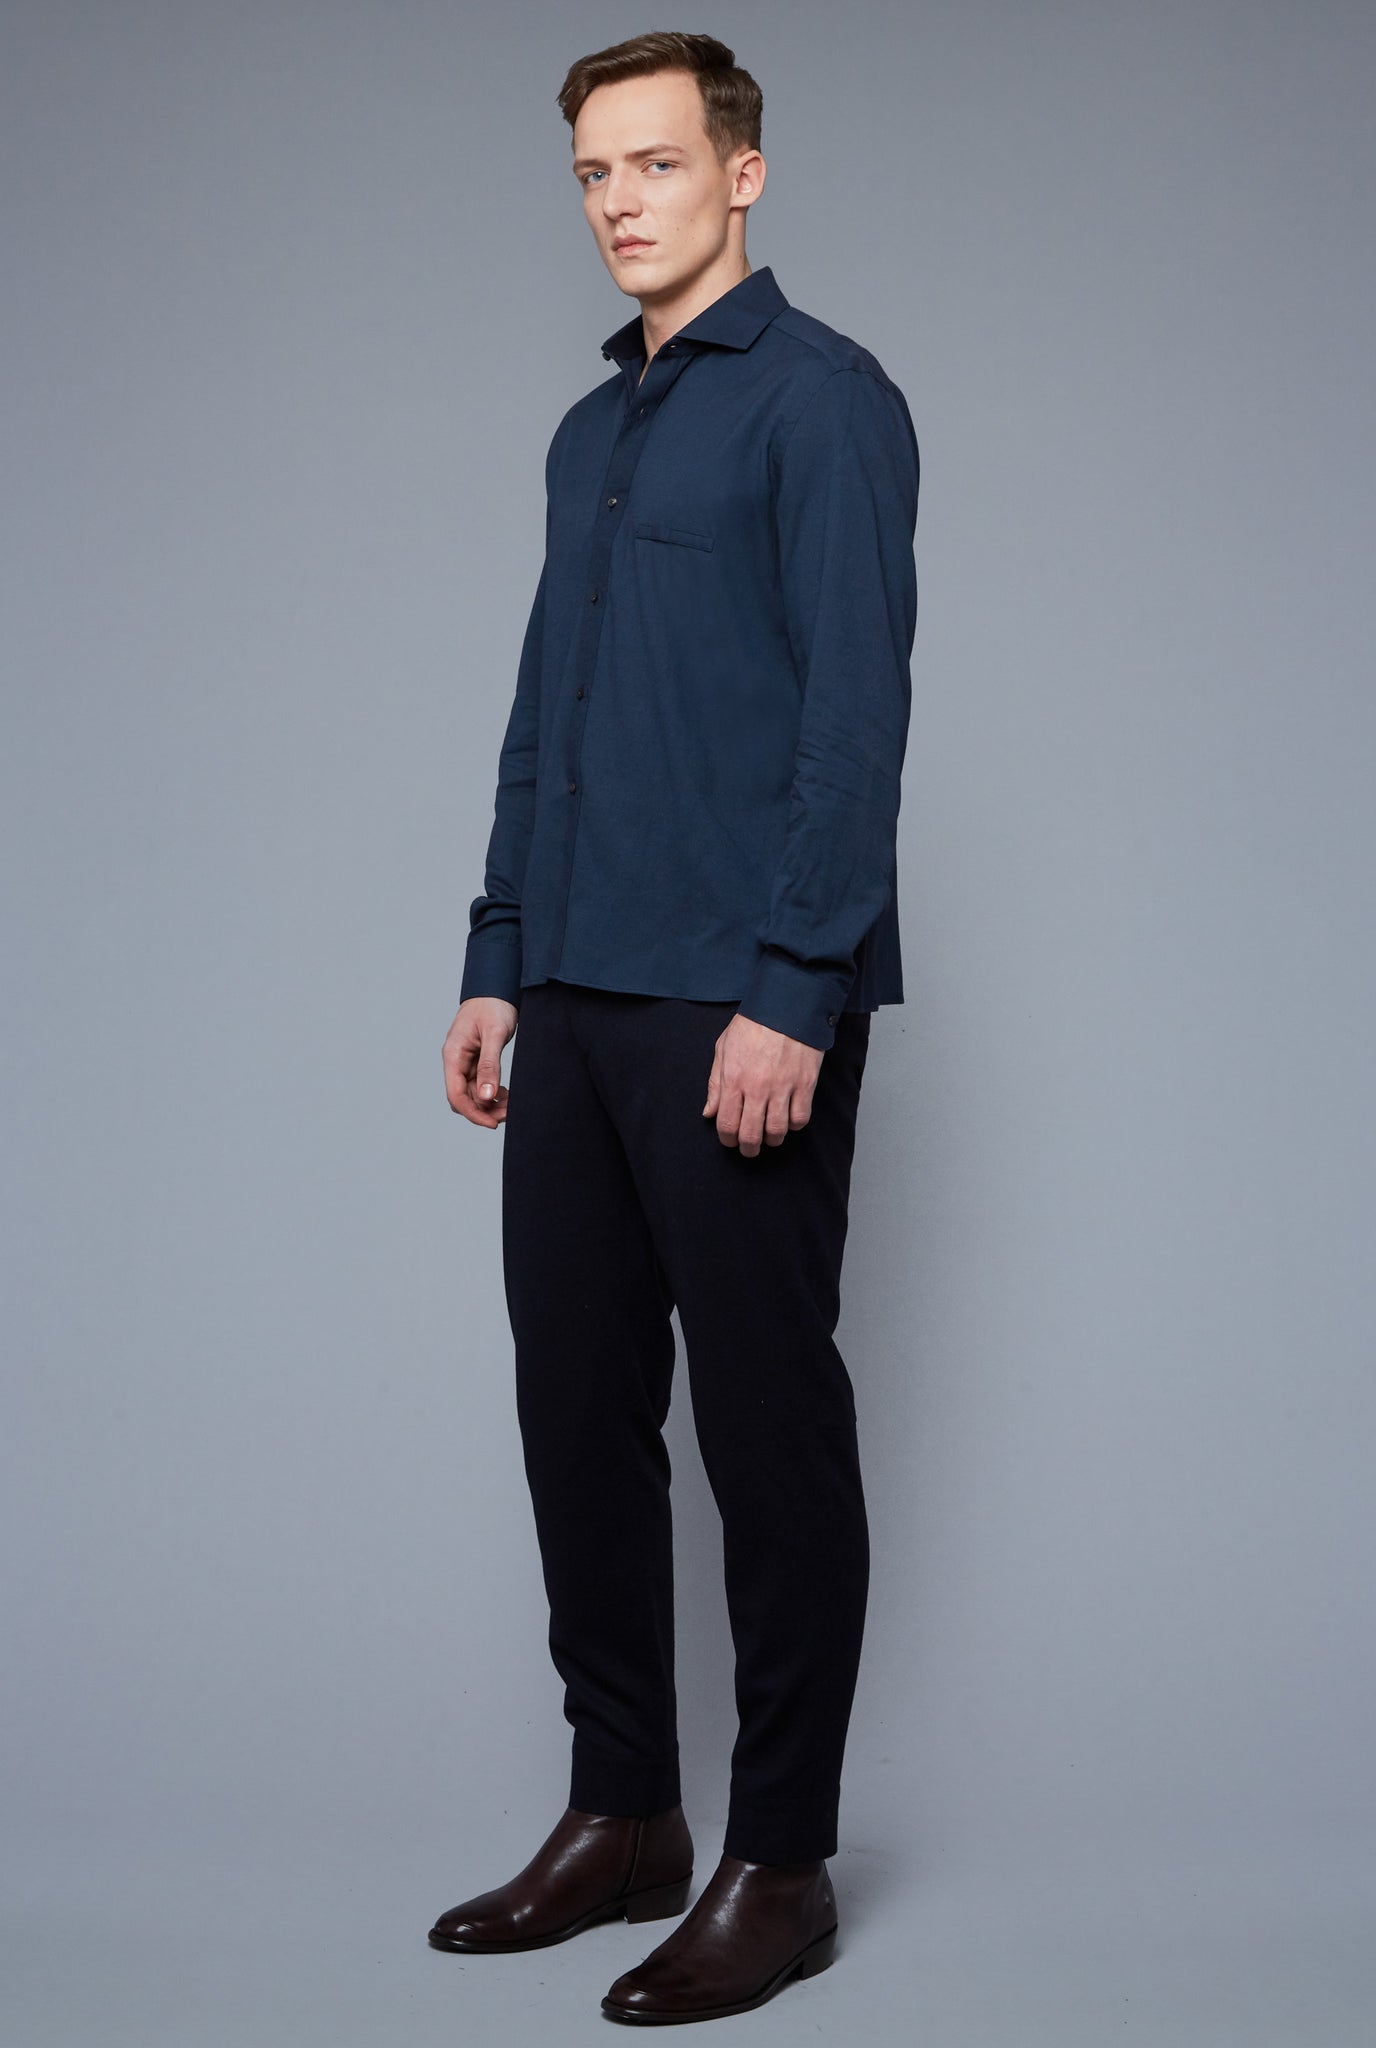 Flannel Greenwich Shirt | Navy